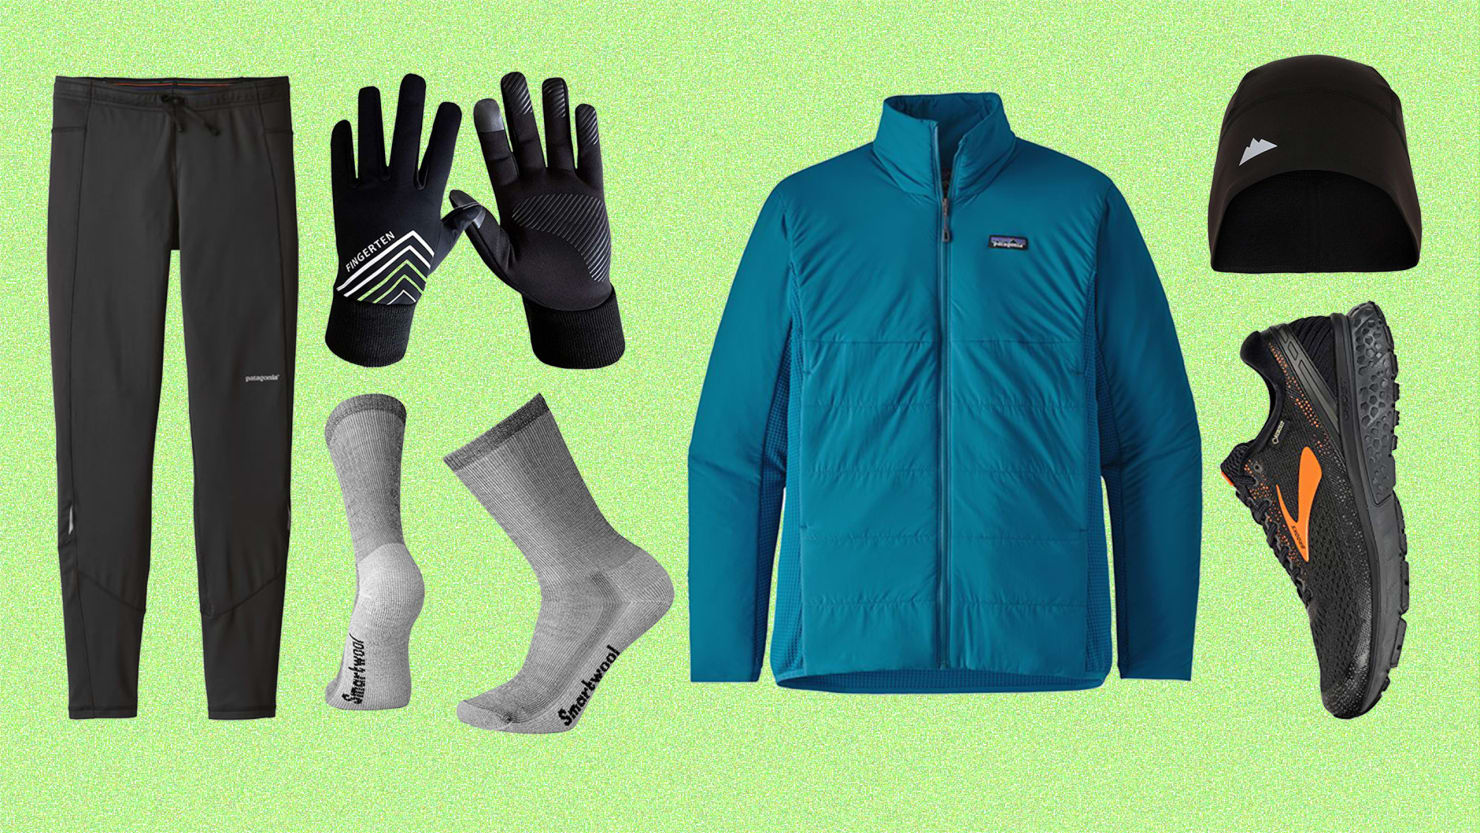 Scouted: A Runner's Guide On What to Wear During Winter and Cold Weather Running